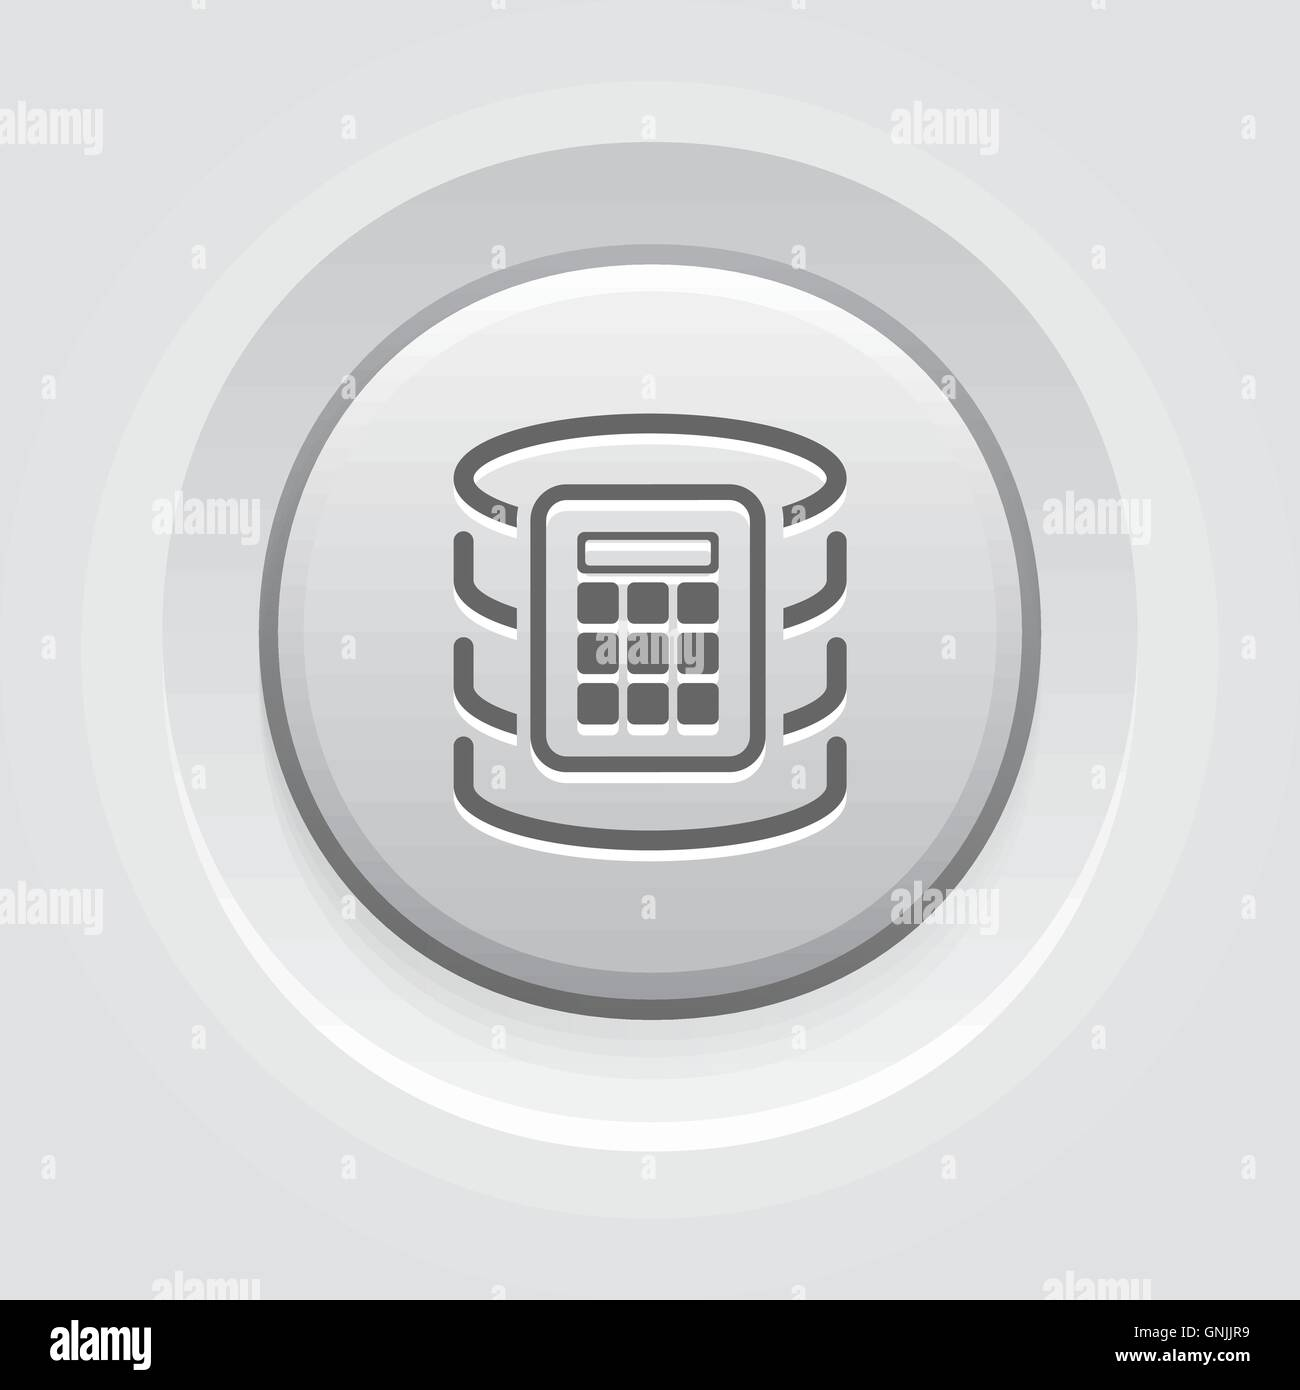 Secure Database Icon. - Stock Image